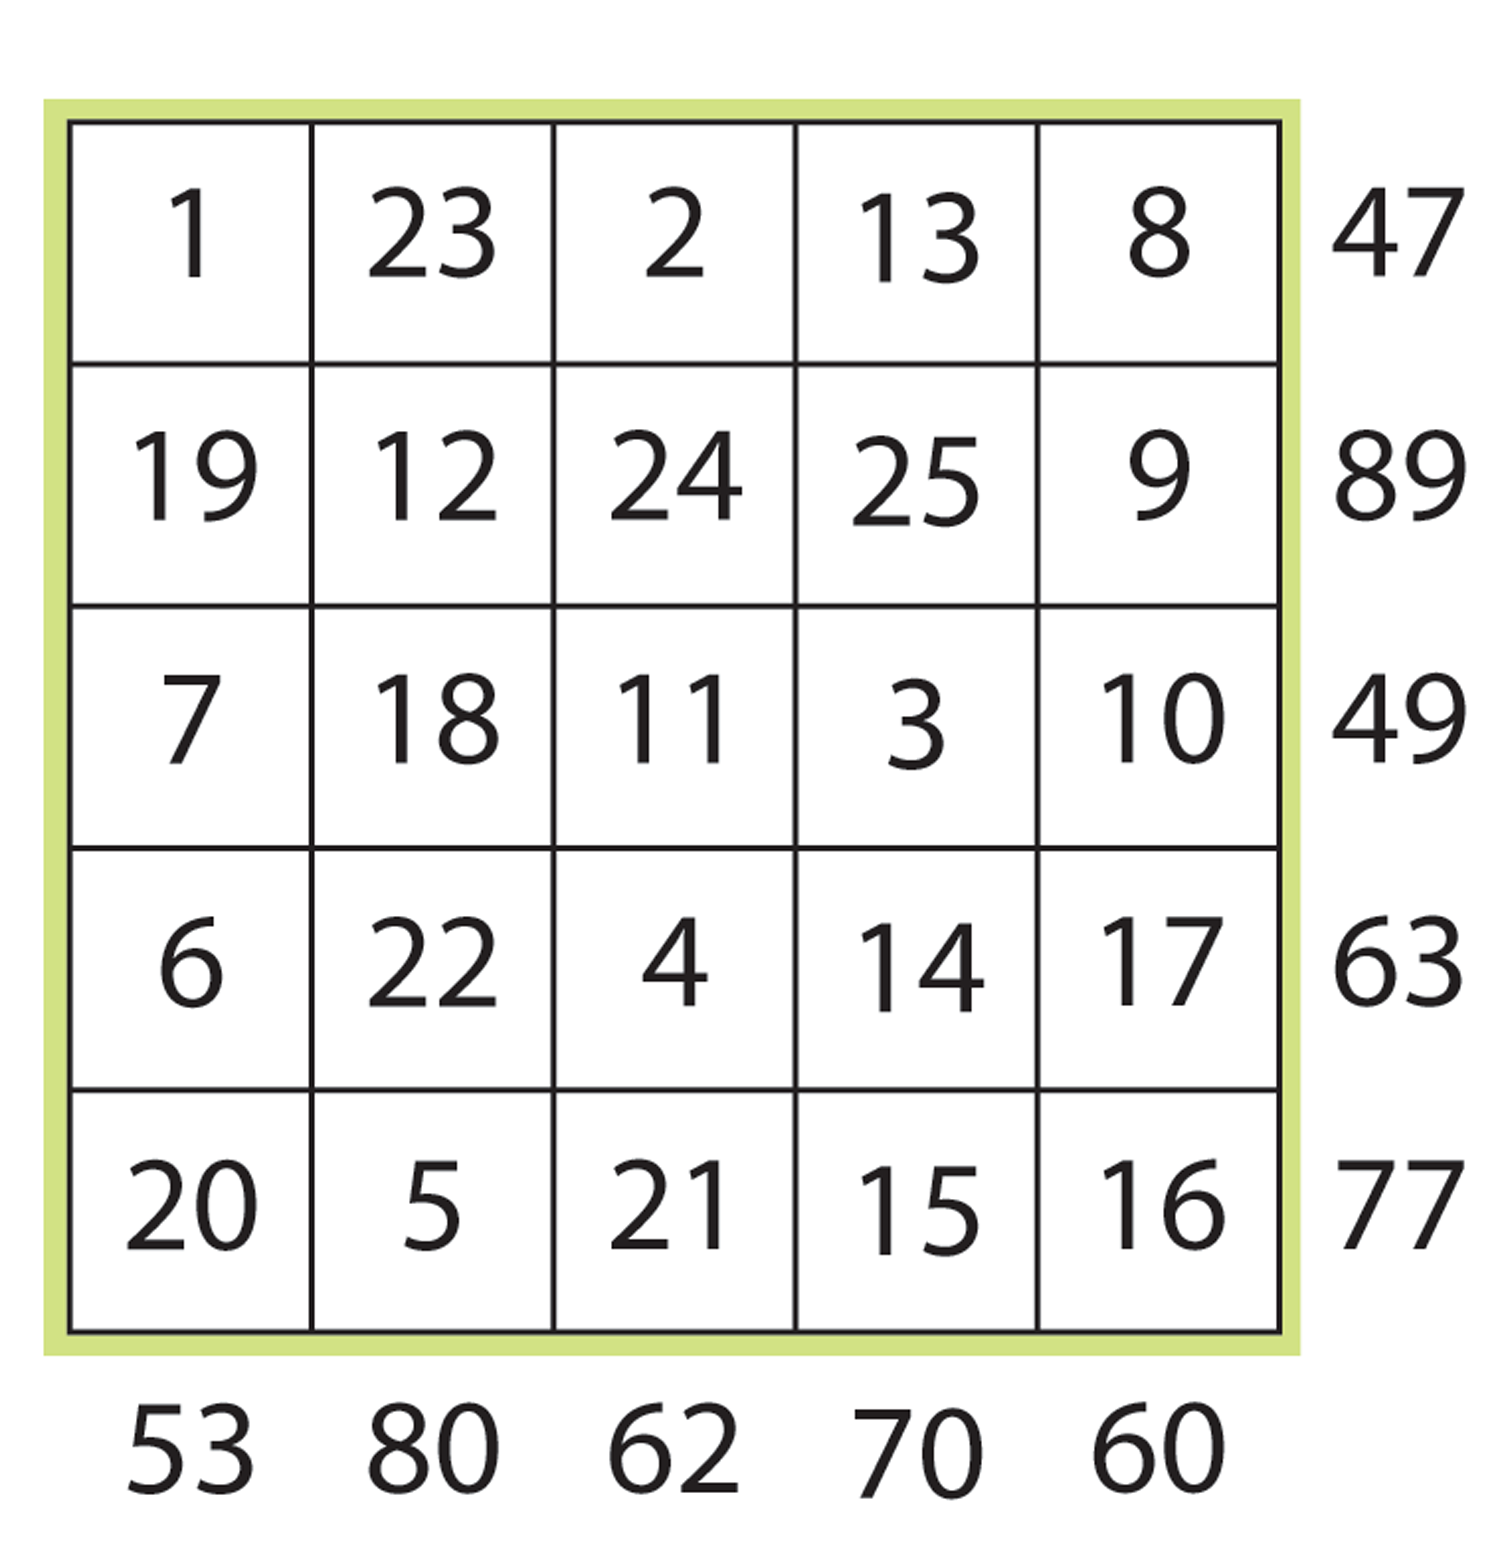 GCNumberSquare001a.png